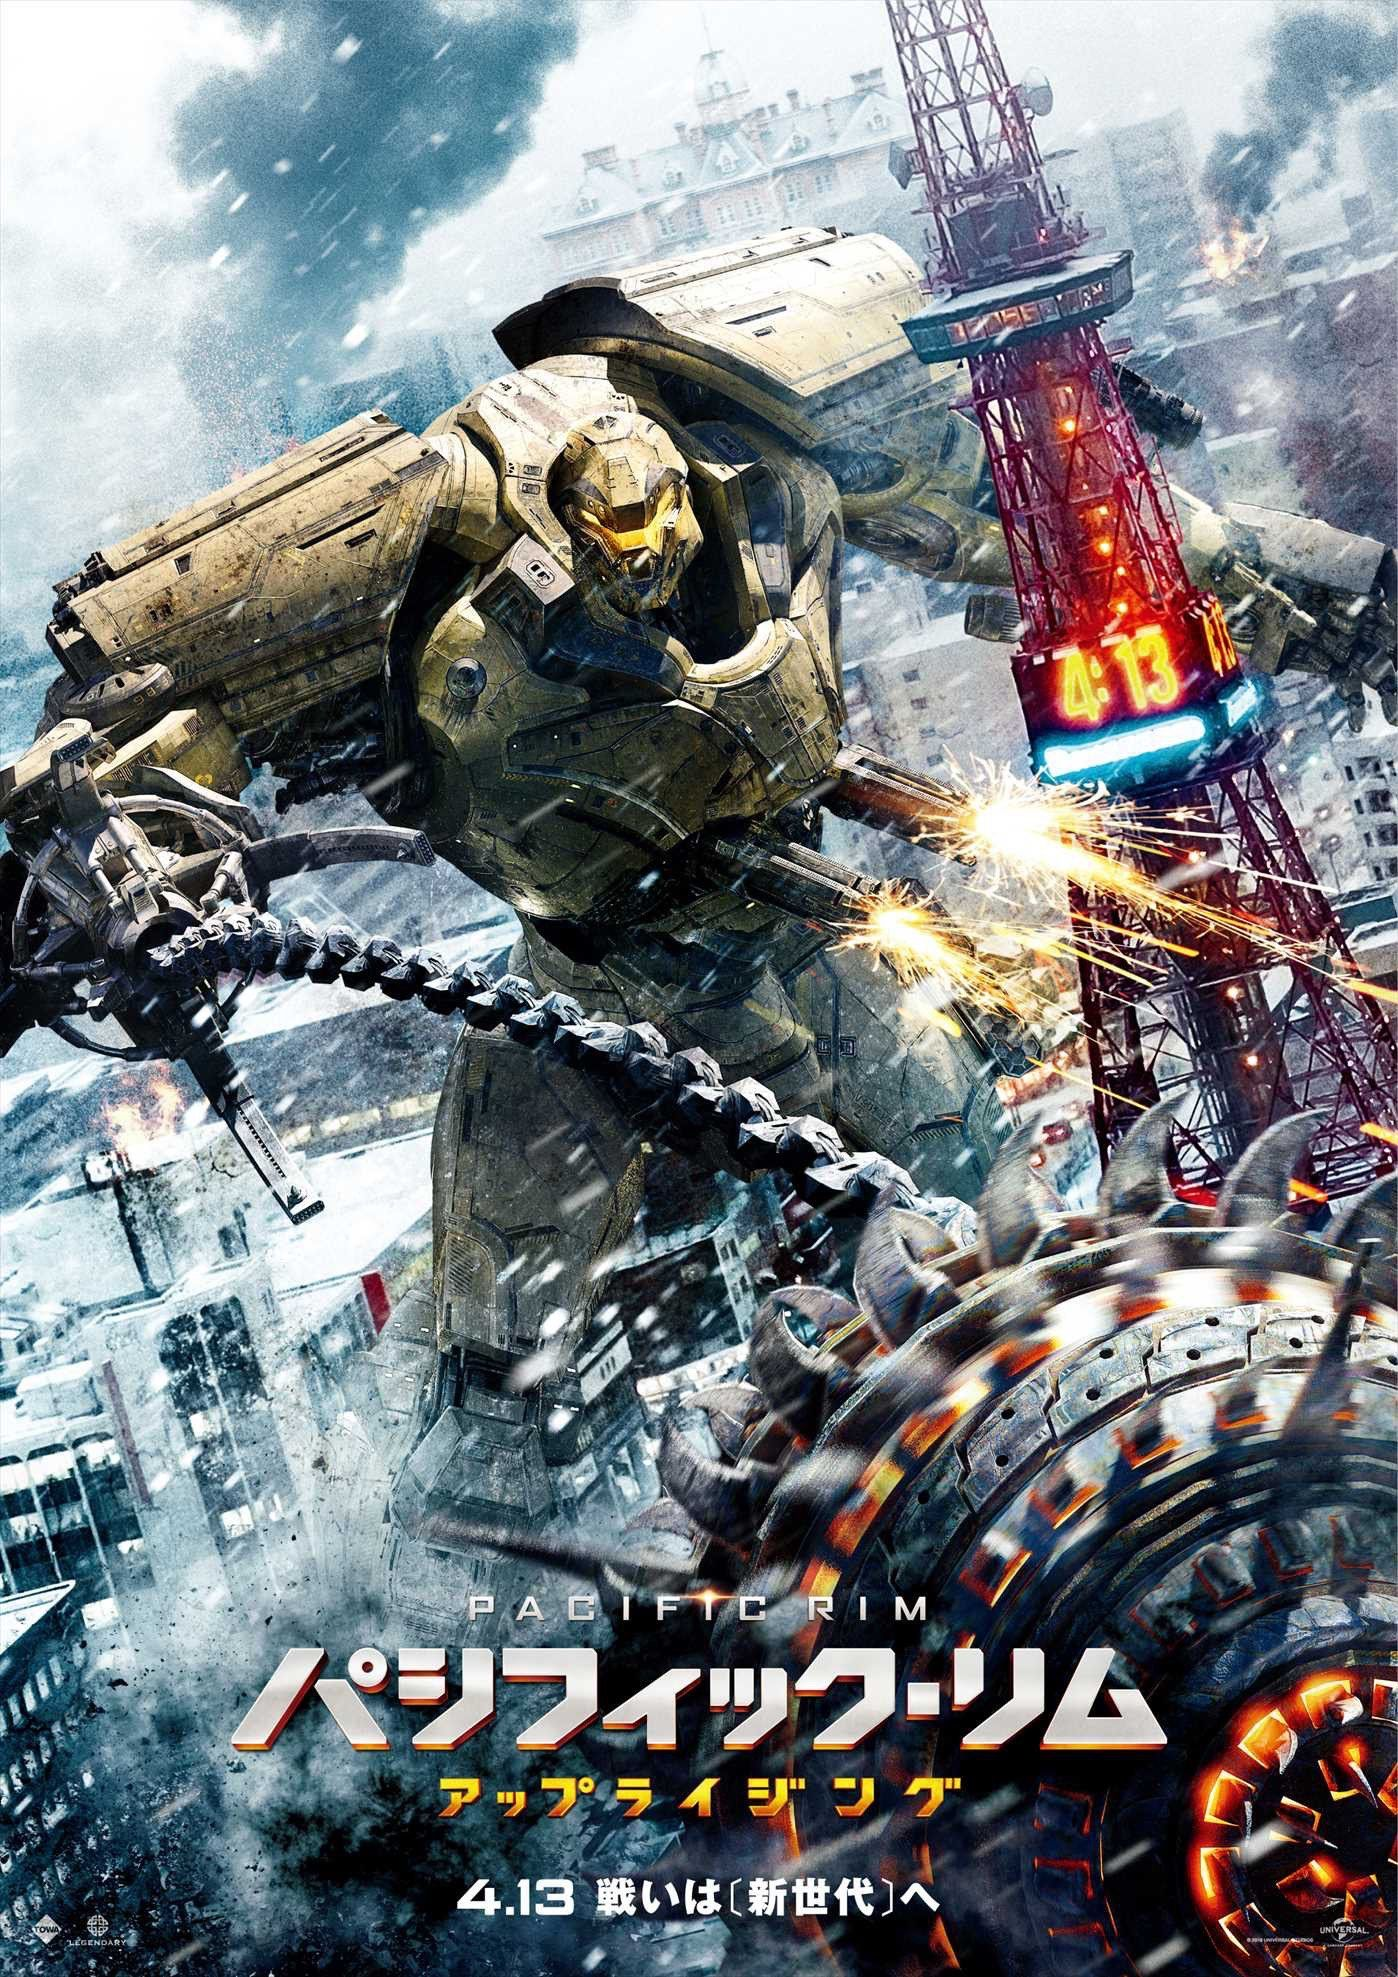 Pin By Mateo Rojas On Jaegers Pacific Rim New Movies In Theaters Full Movies